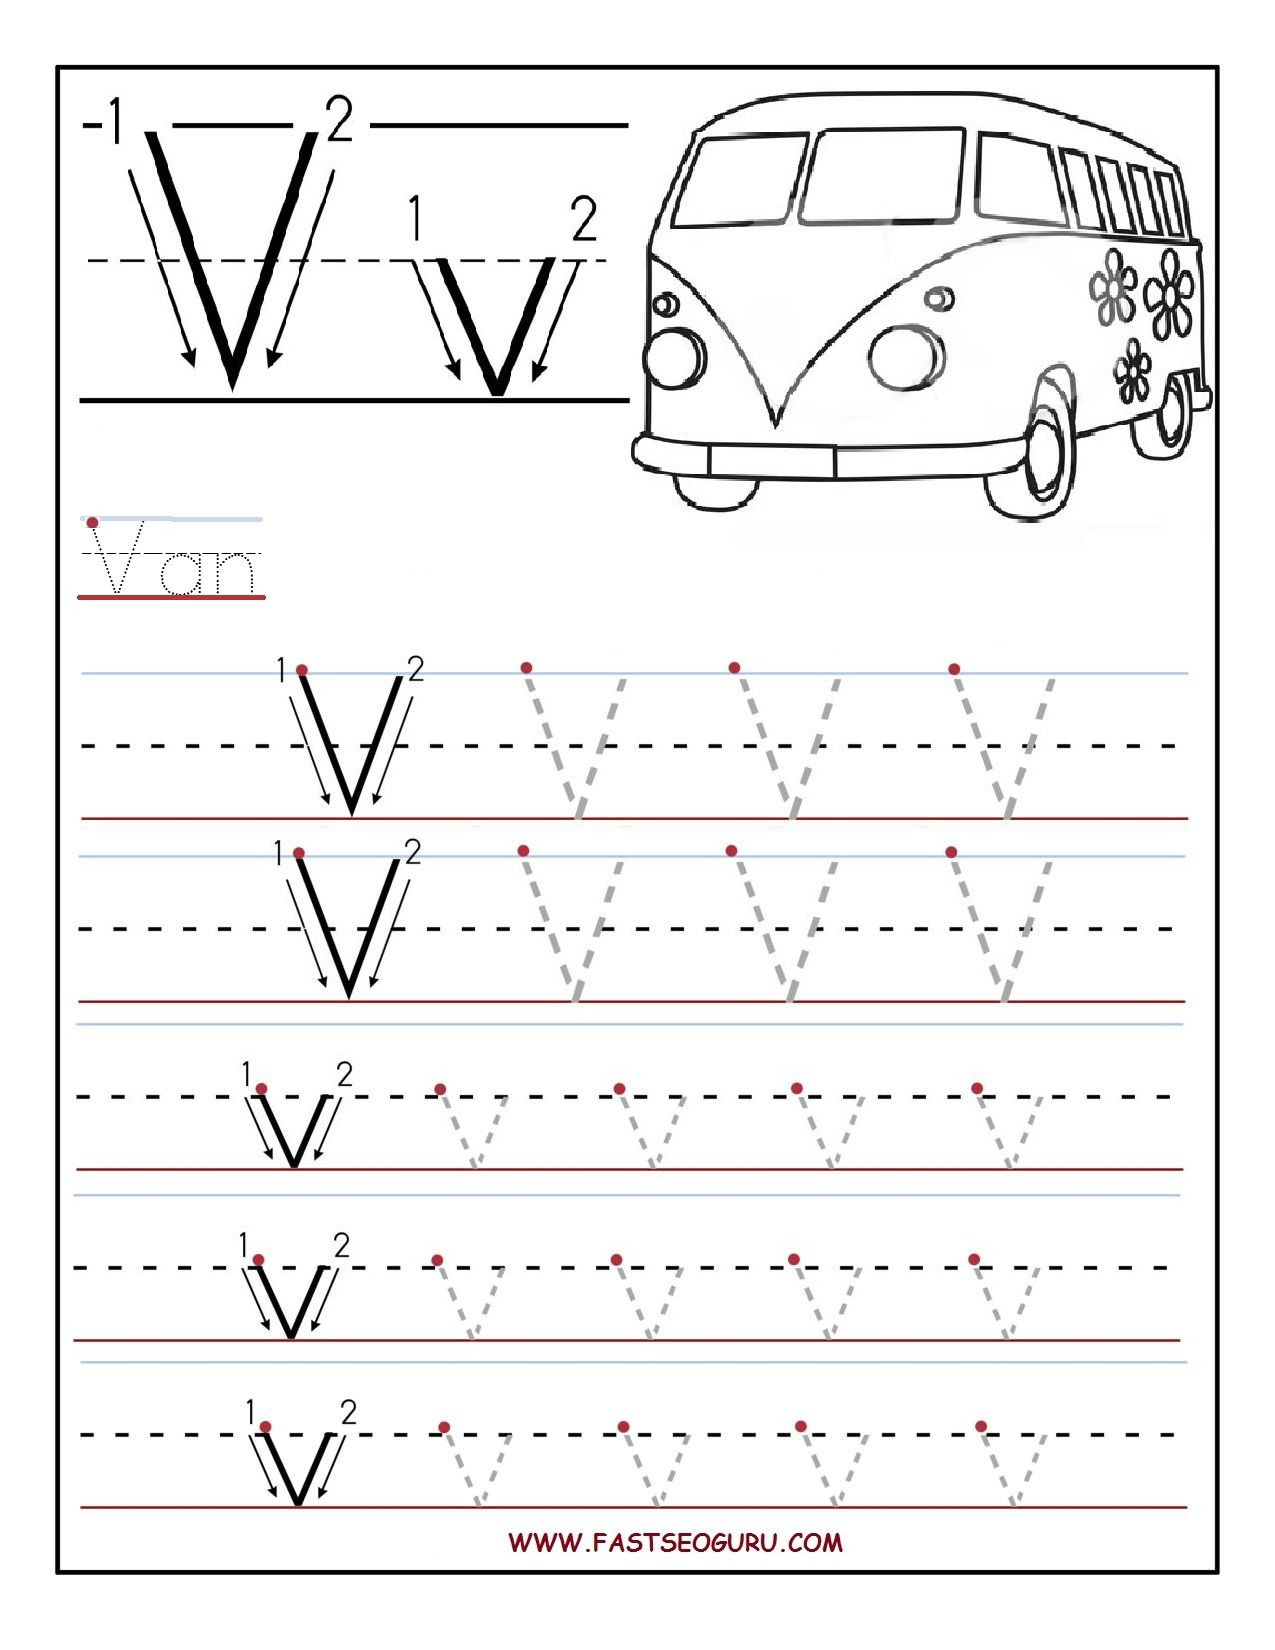 printable letter v tracing worksheets for preschool pre k work sheets pinterest tracing. Black Bedroom Furniture Sets. Home Design Ideas